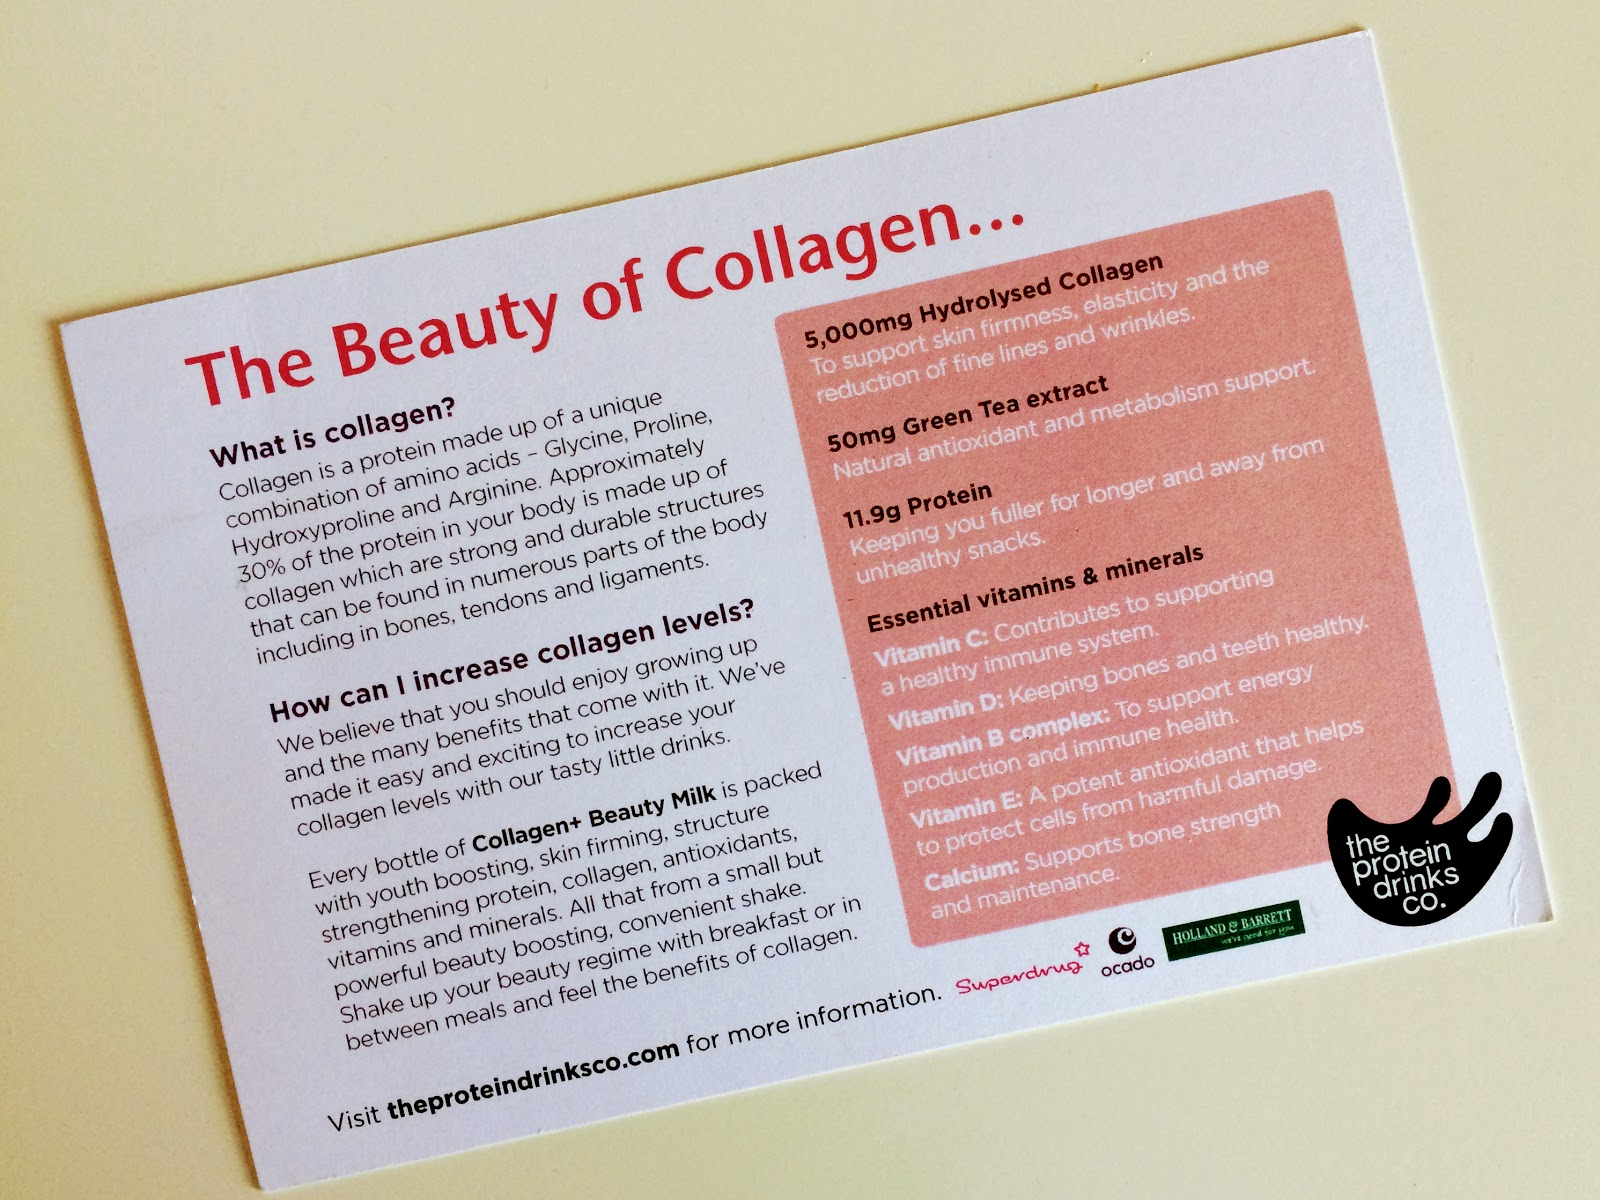 Collagen Beauty Milk info card